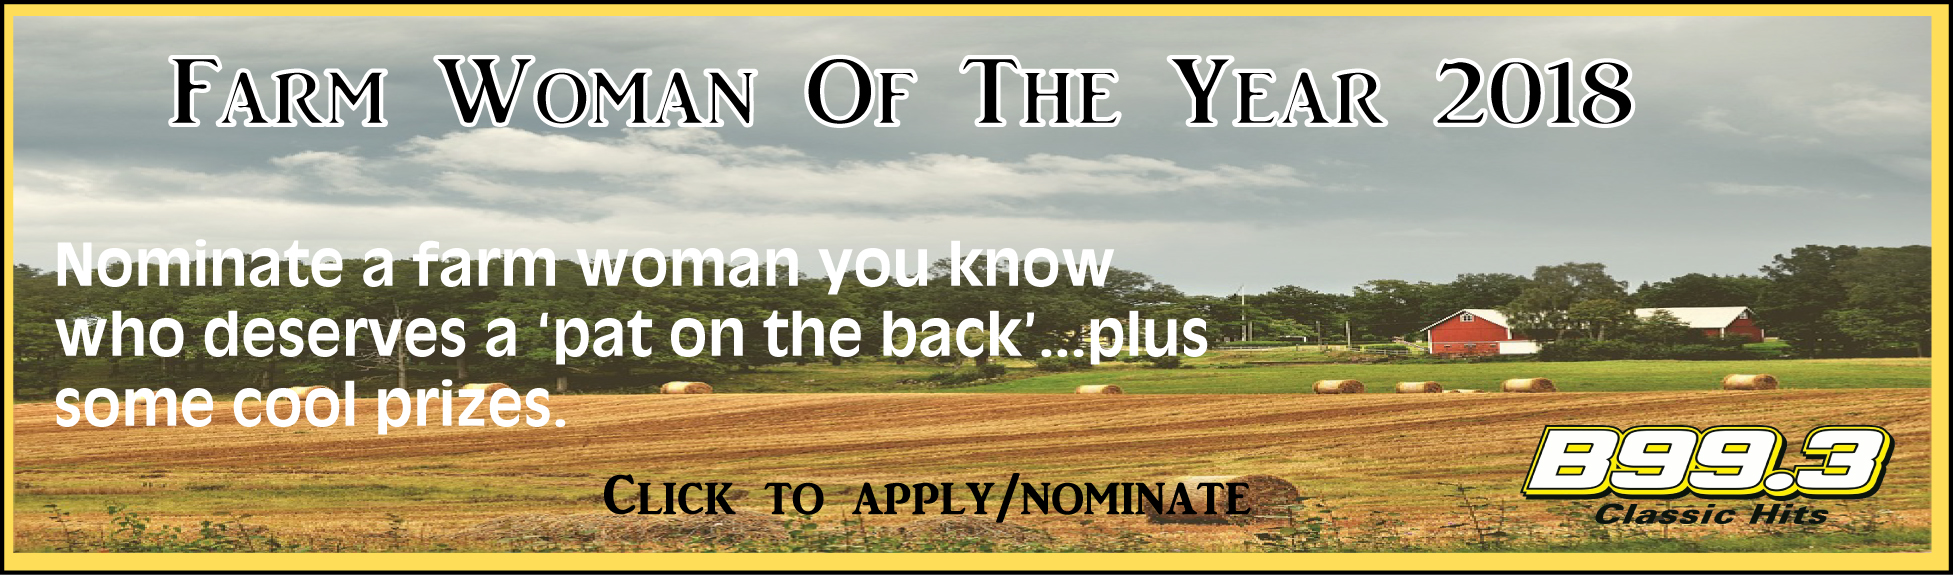 Feature: http://wtcham960.secondstreetapp.com/2018-Farm-Woman-of-the-Year/